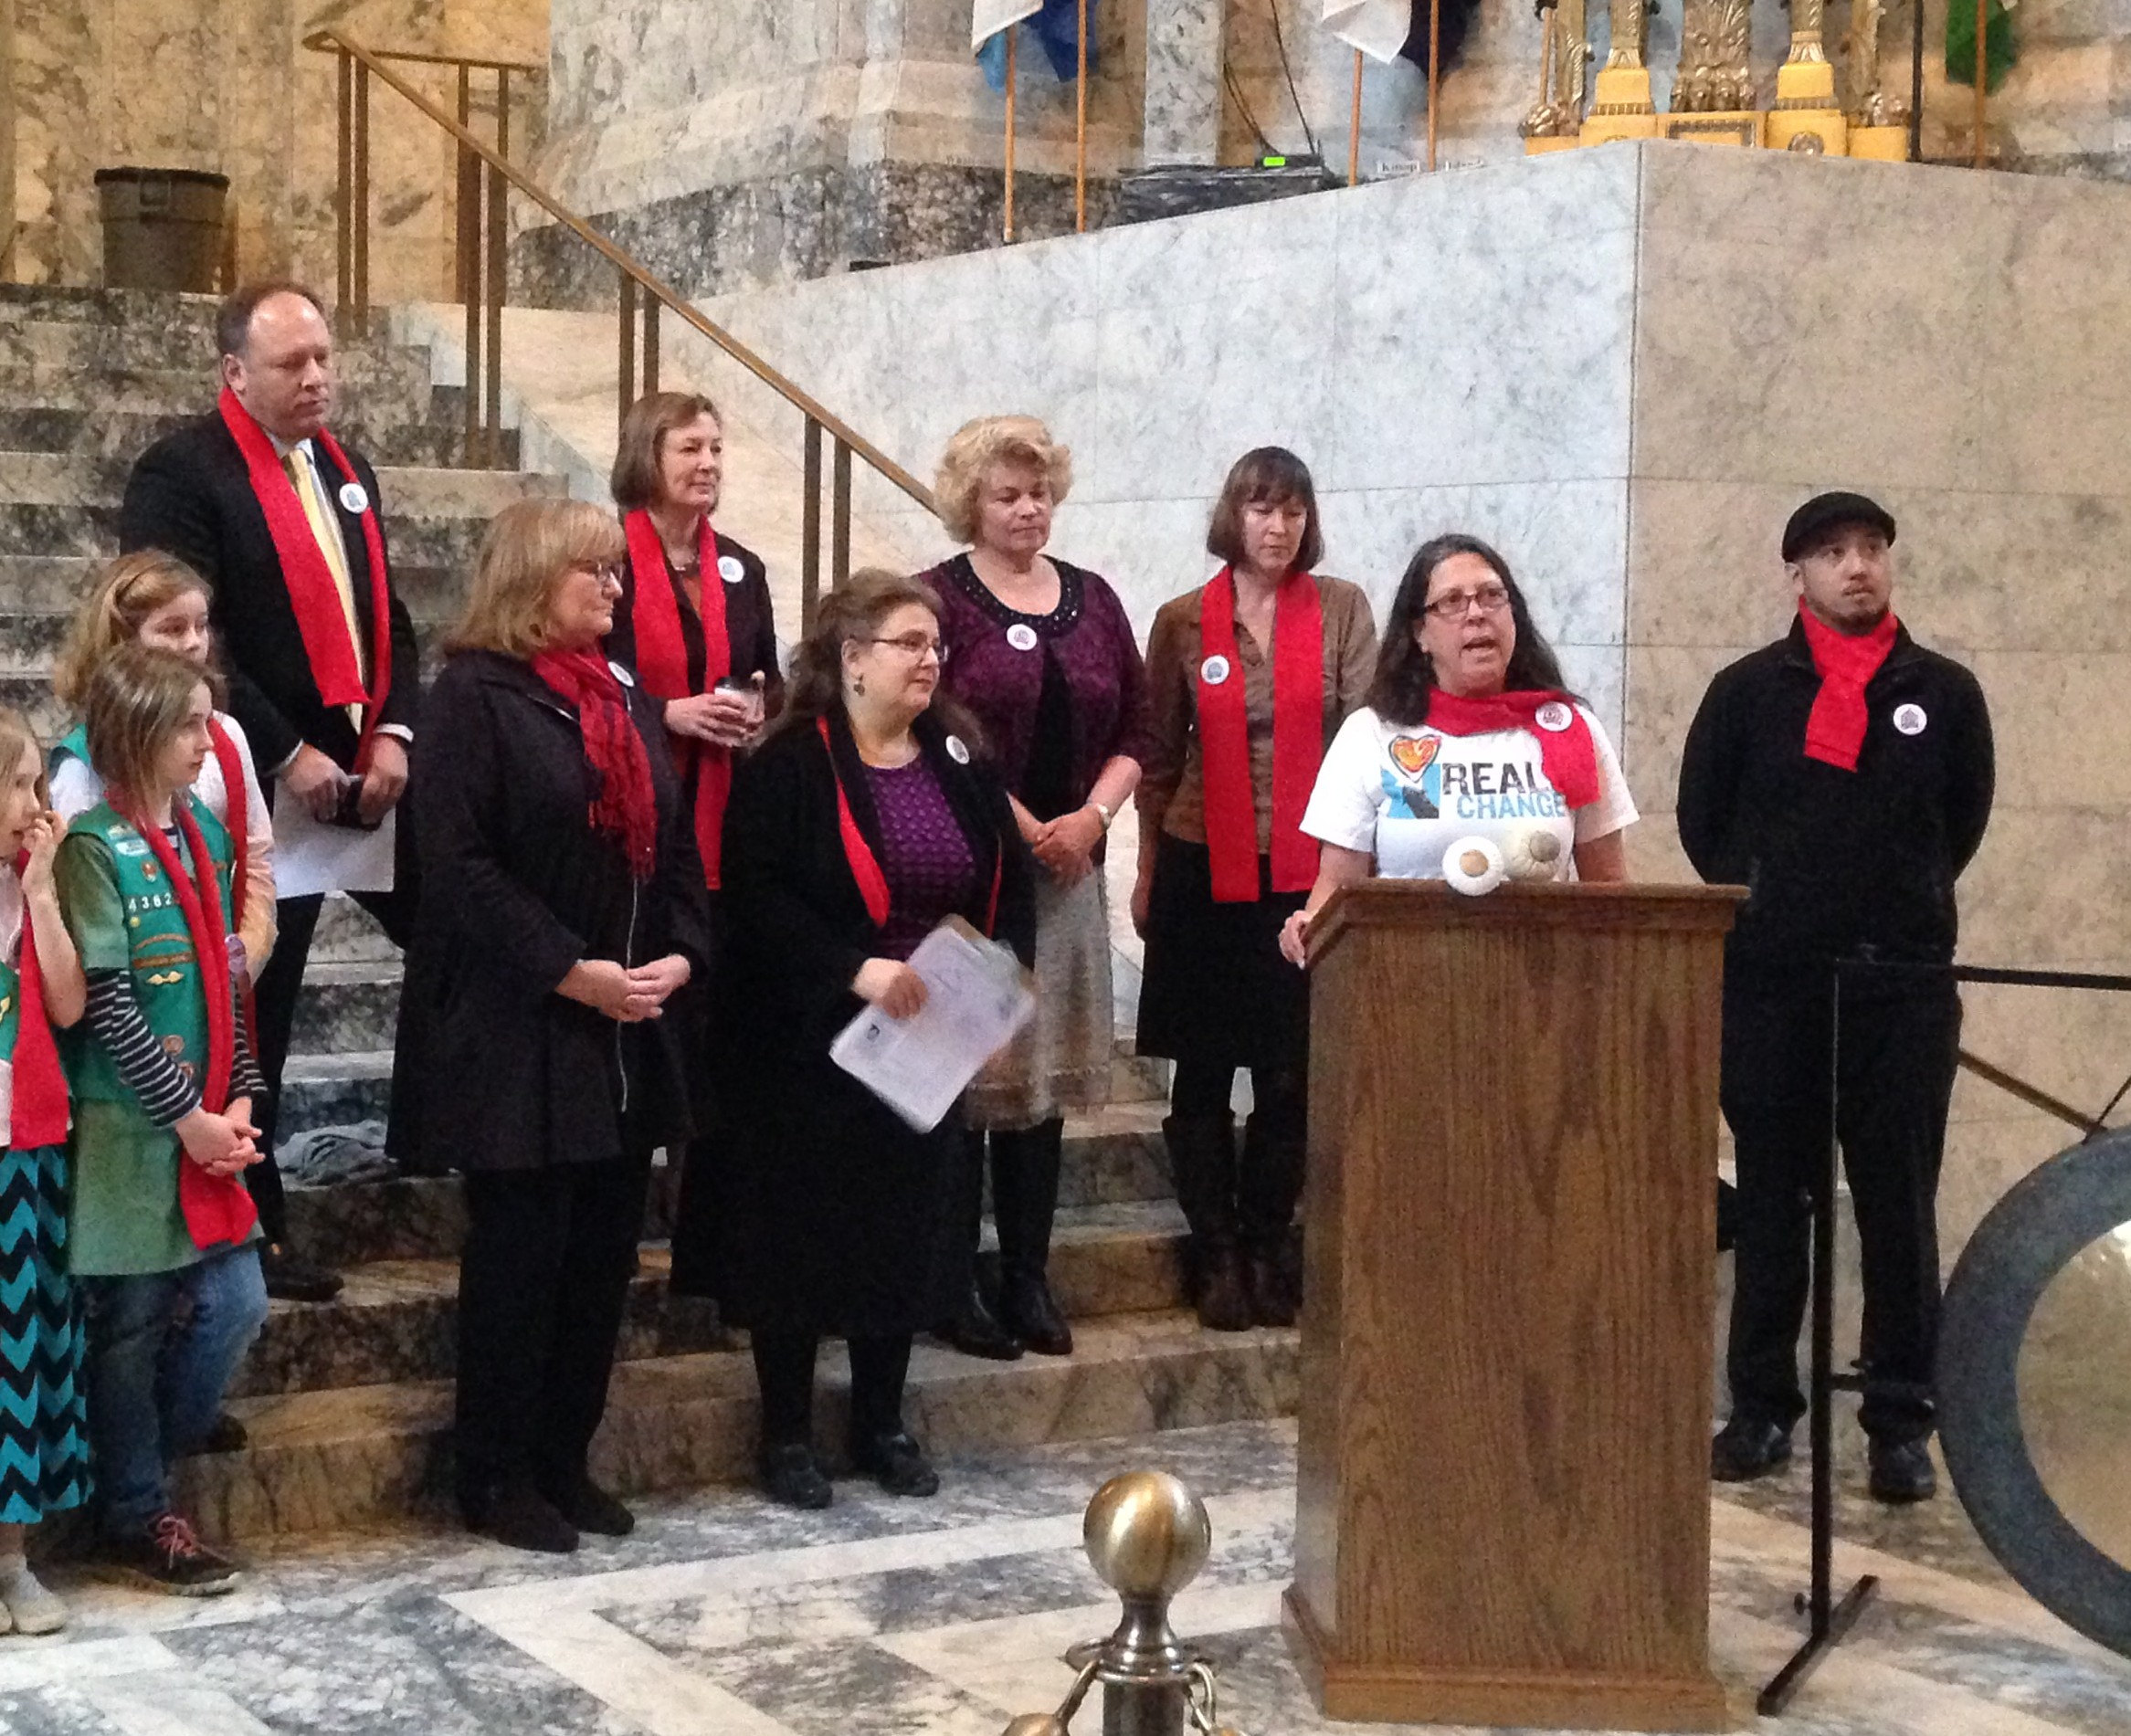 2014 Scholarship Recipient Susan speaking at 2015 Gong Ringing in Olympia